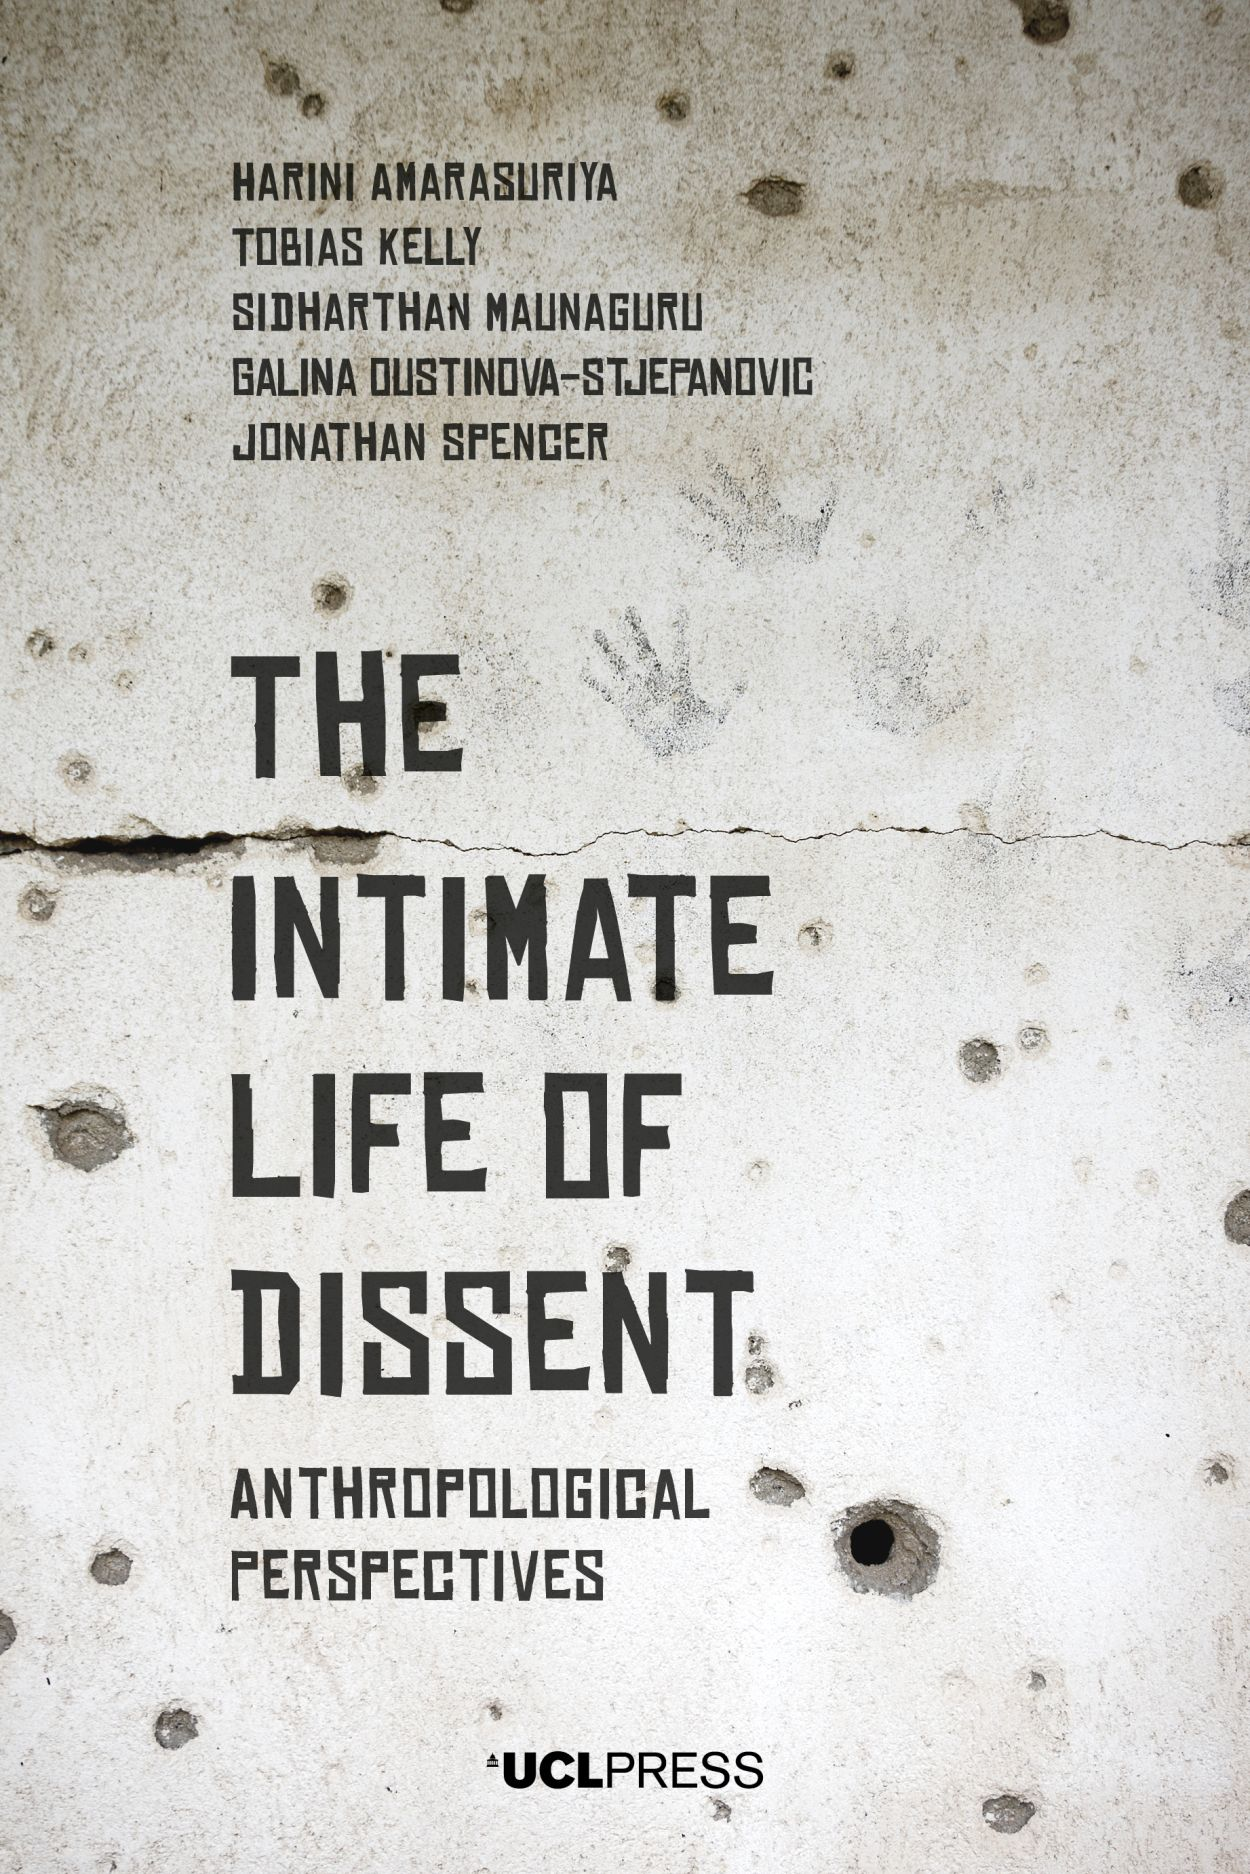 The Intimate Life of Dissent: Anthropological Perspectives